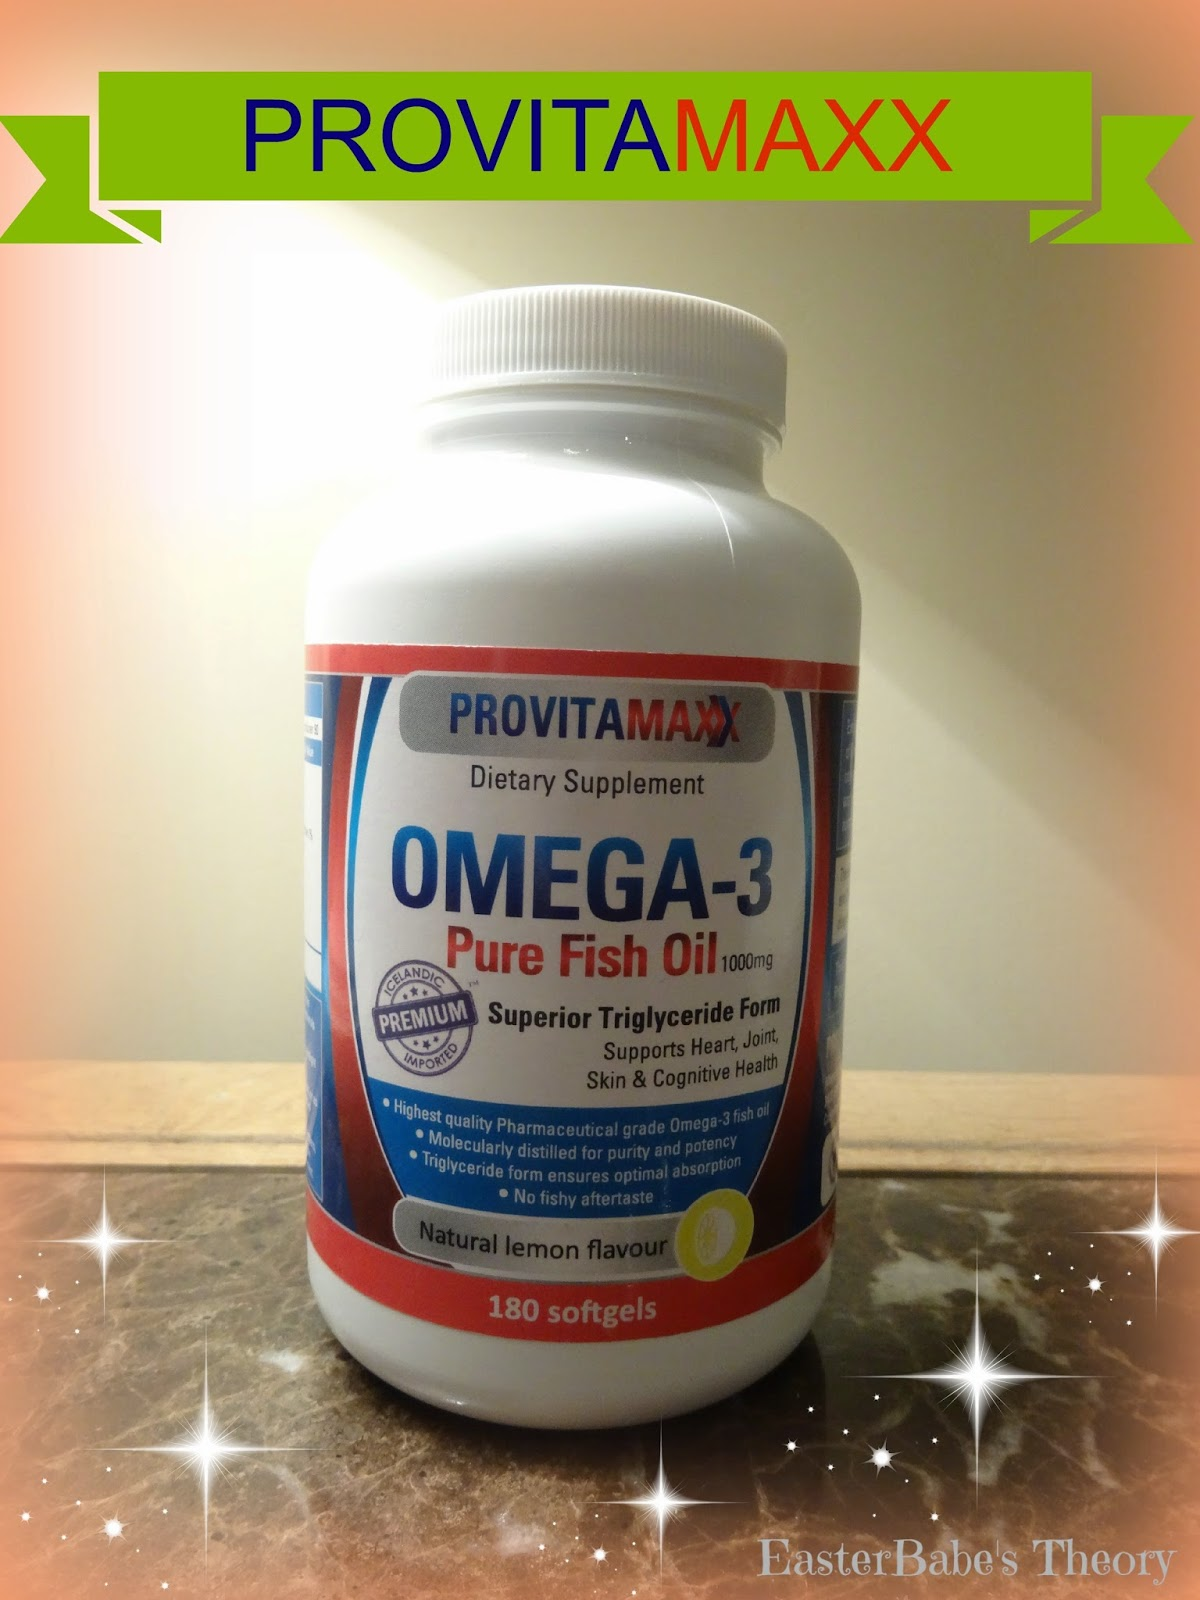 Easter babe 39 s theory provitamaxx omega 3 fish oil giveaway for Fish oil uses